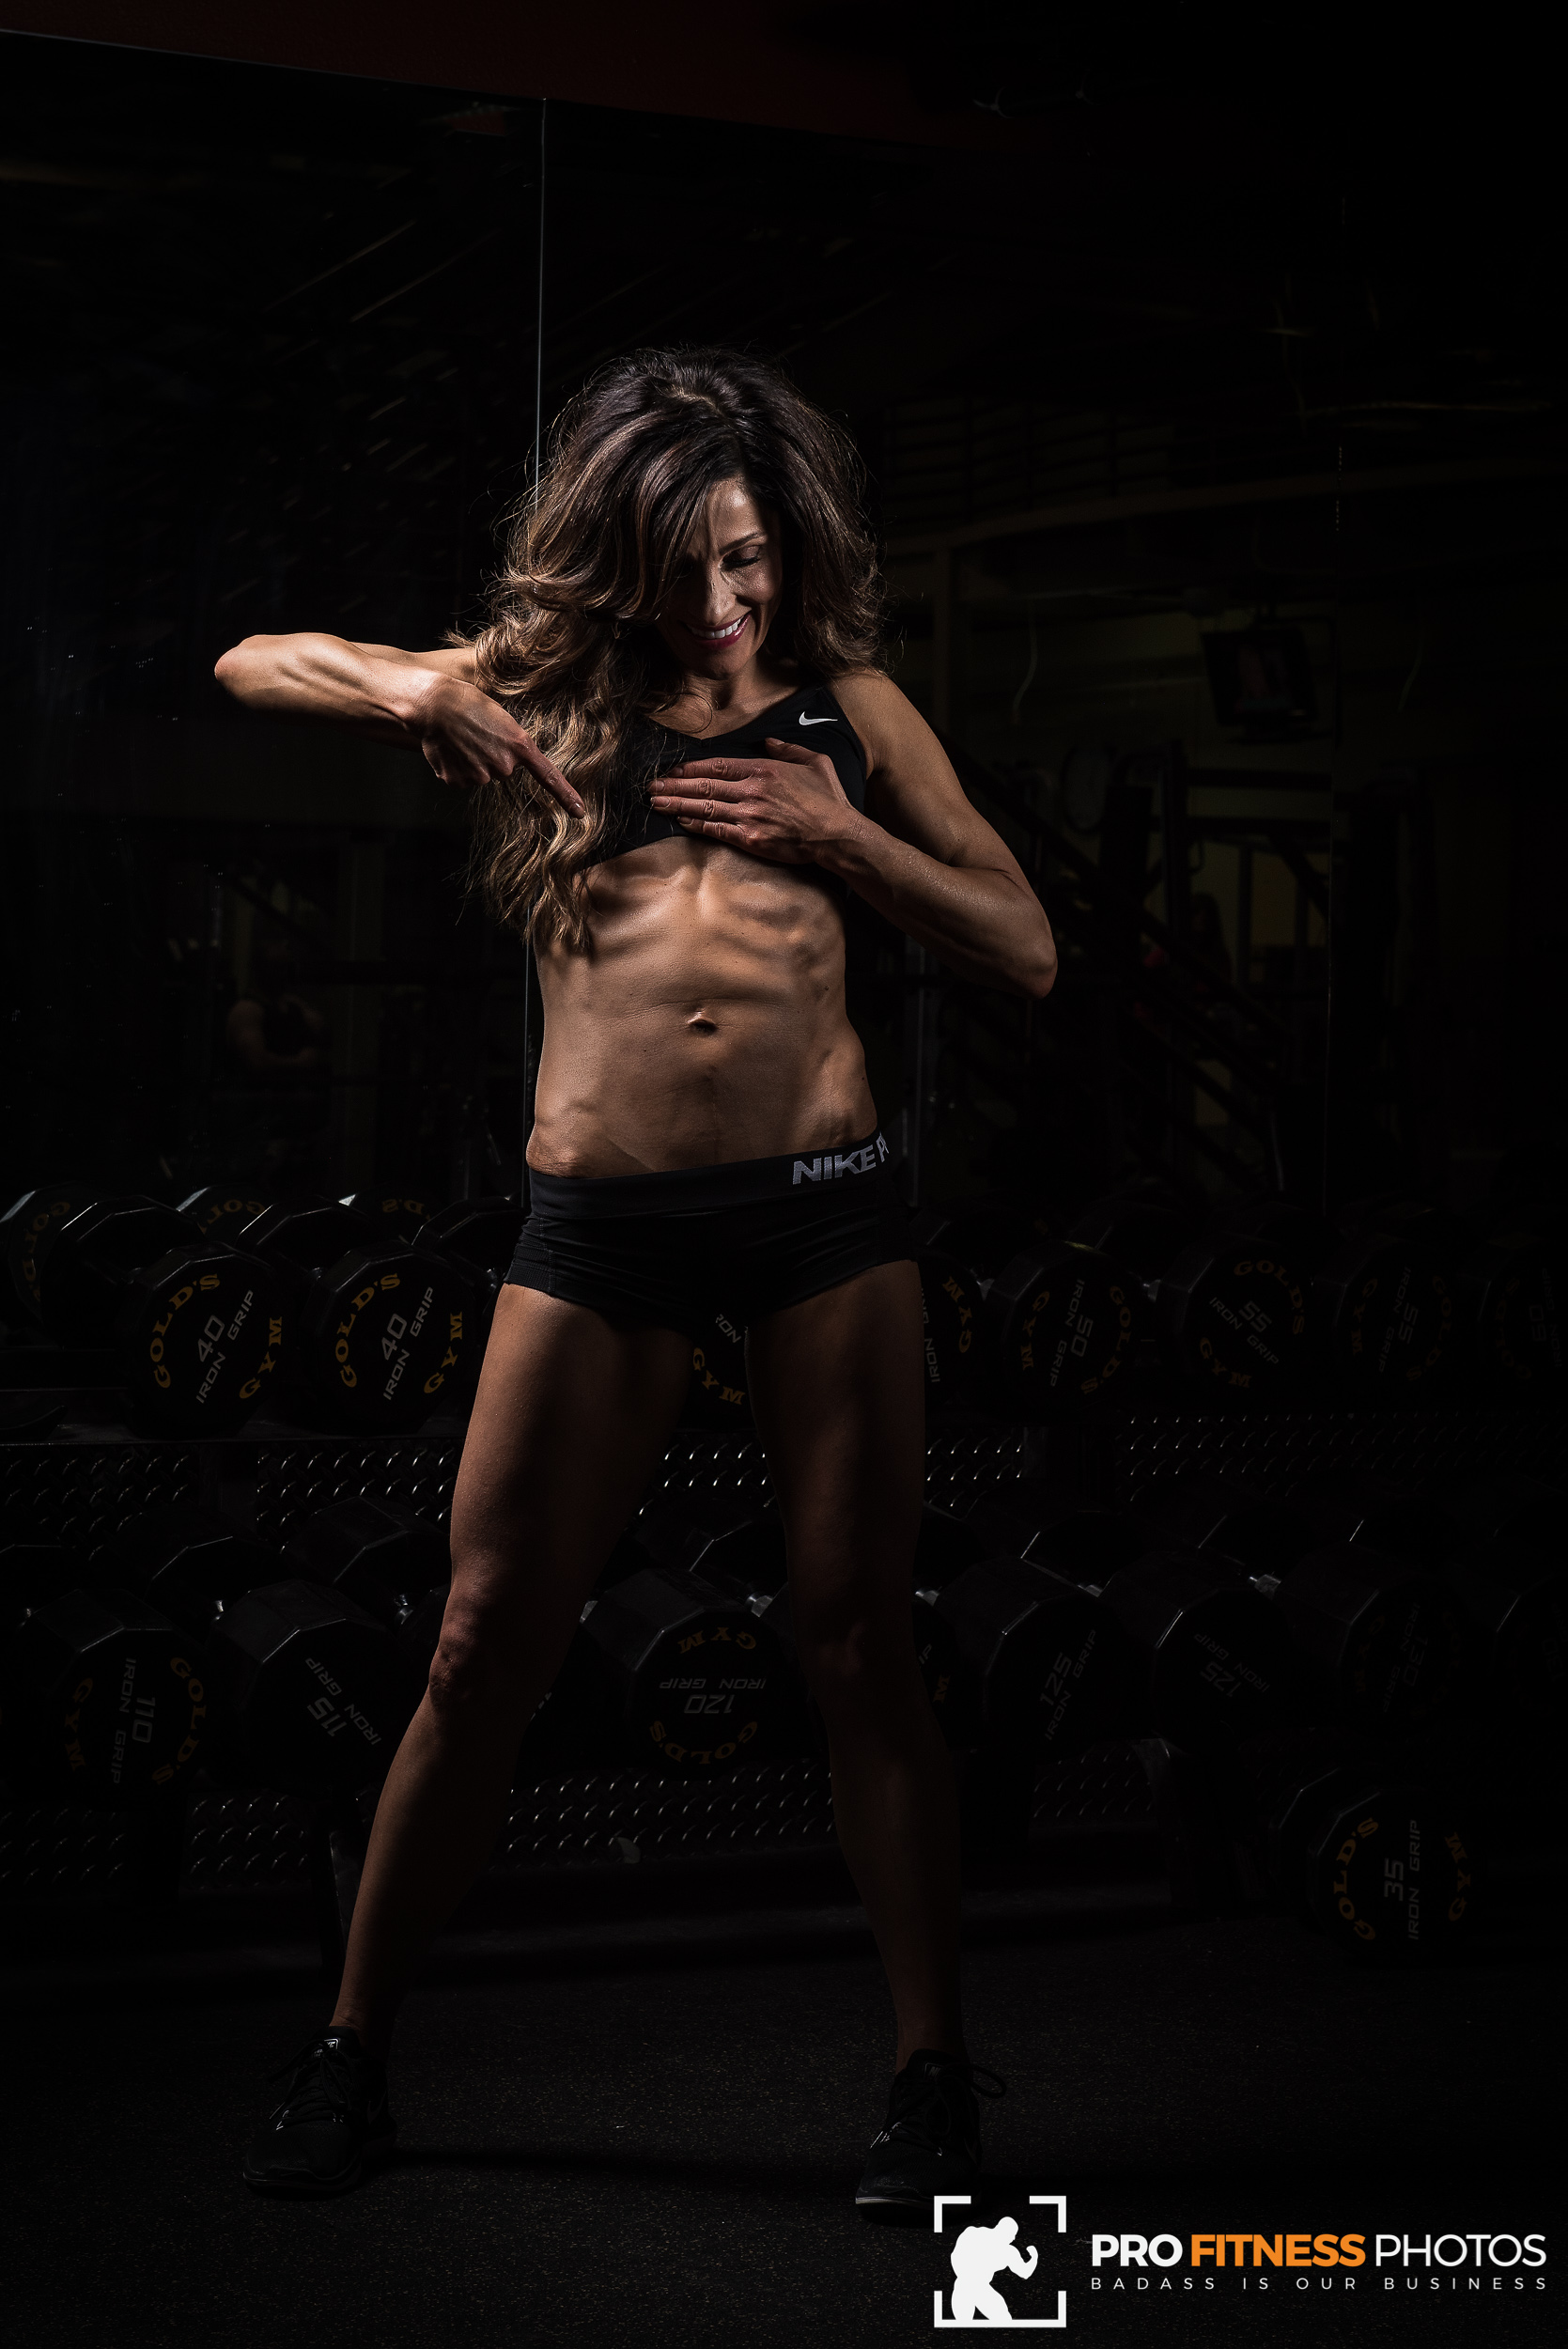 utah-fitness-photography-jennifer-11.jpg